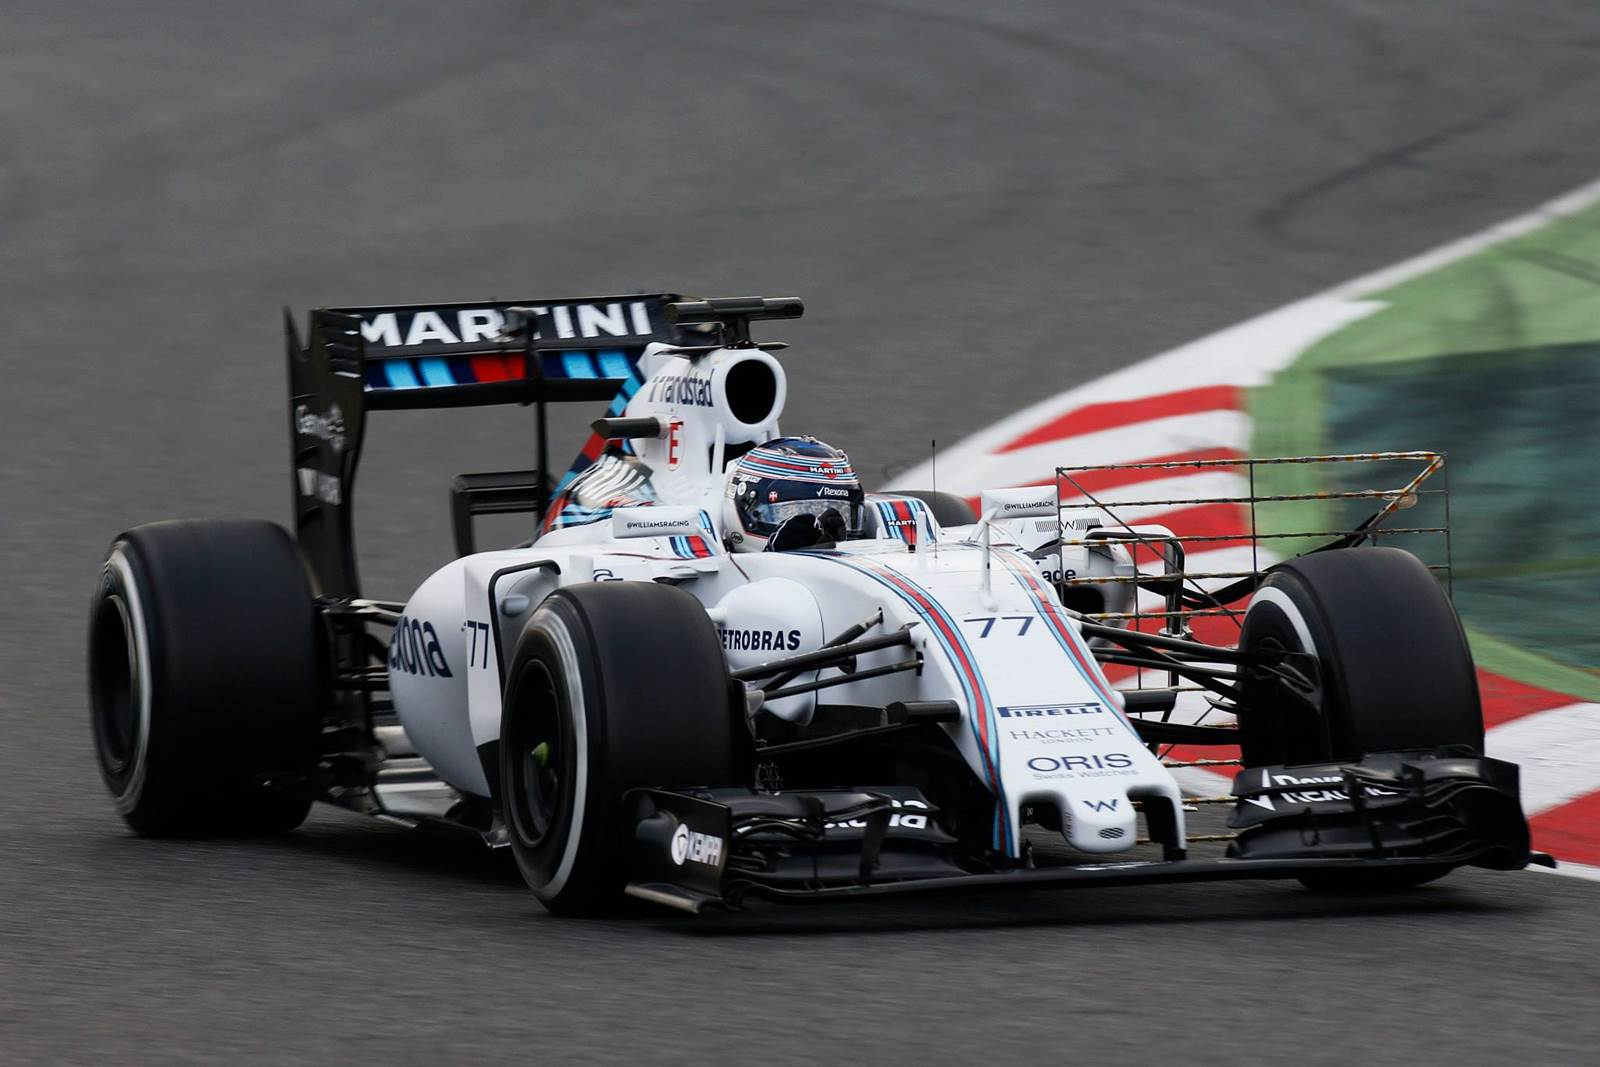 Williams FW37 - Bottas